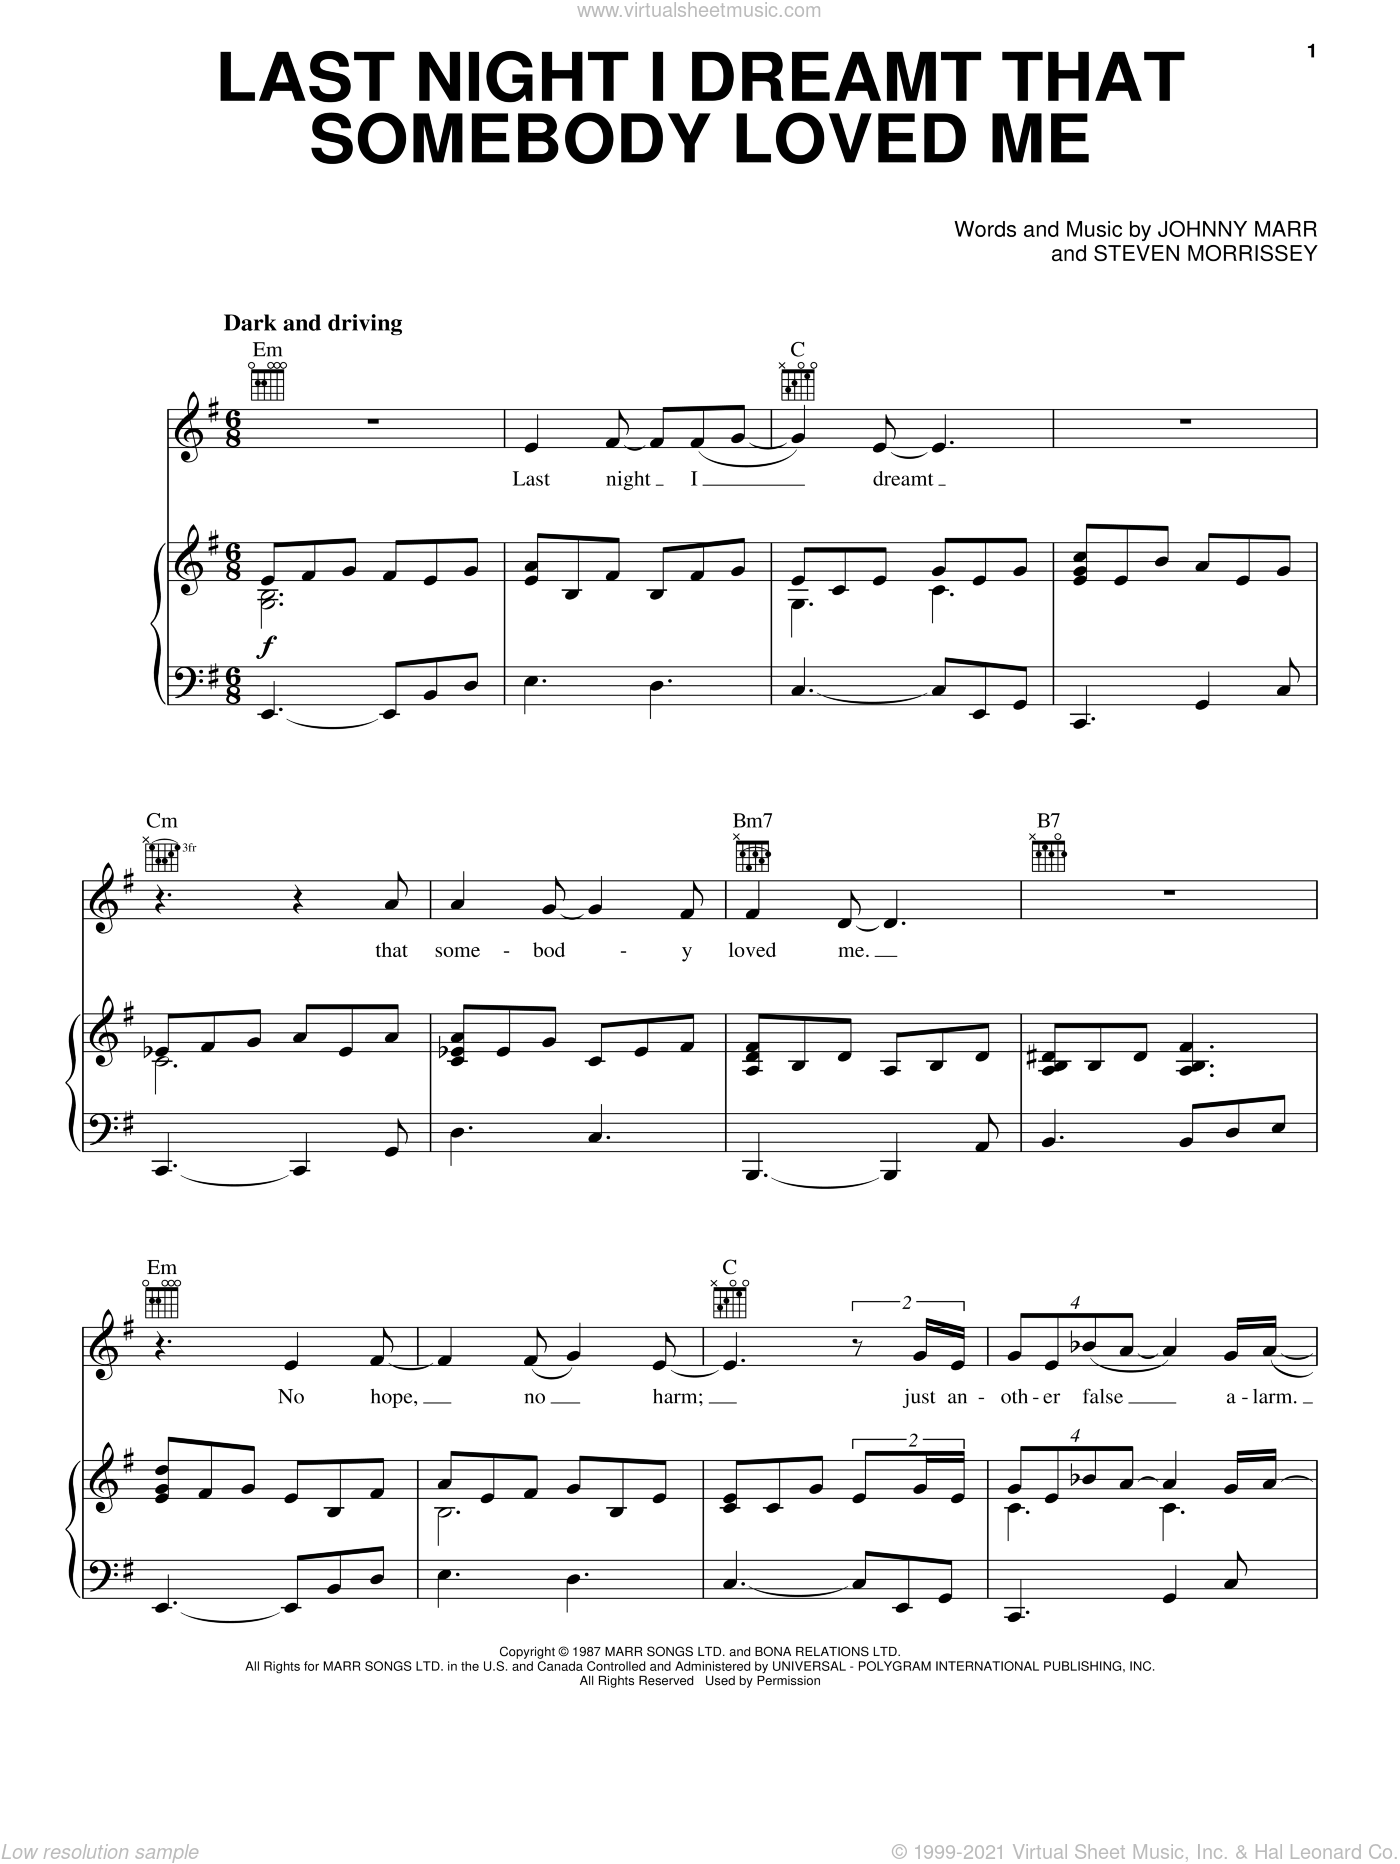 Last Night I Dreamt That Somebody Loved Me sheet music for voice, piano or guitar by The Smiths, Johnny Marr and Steven Morrissey, intermediate skill level